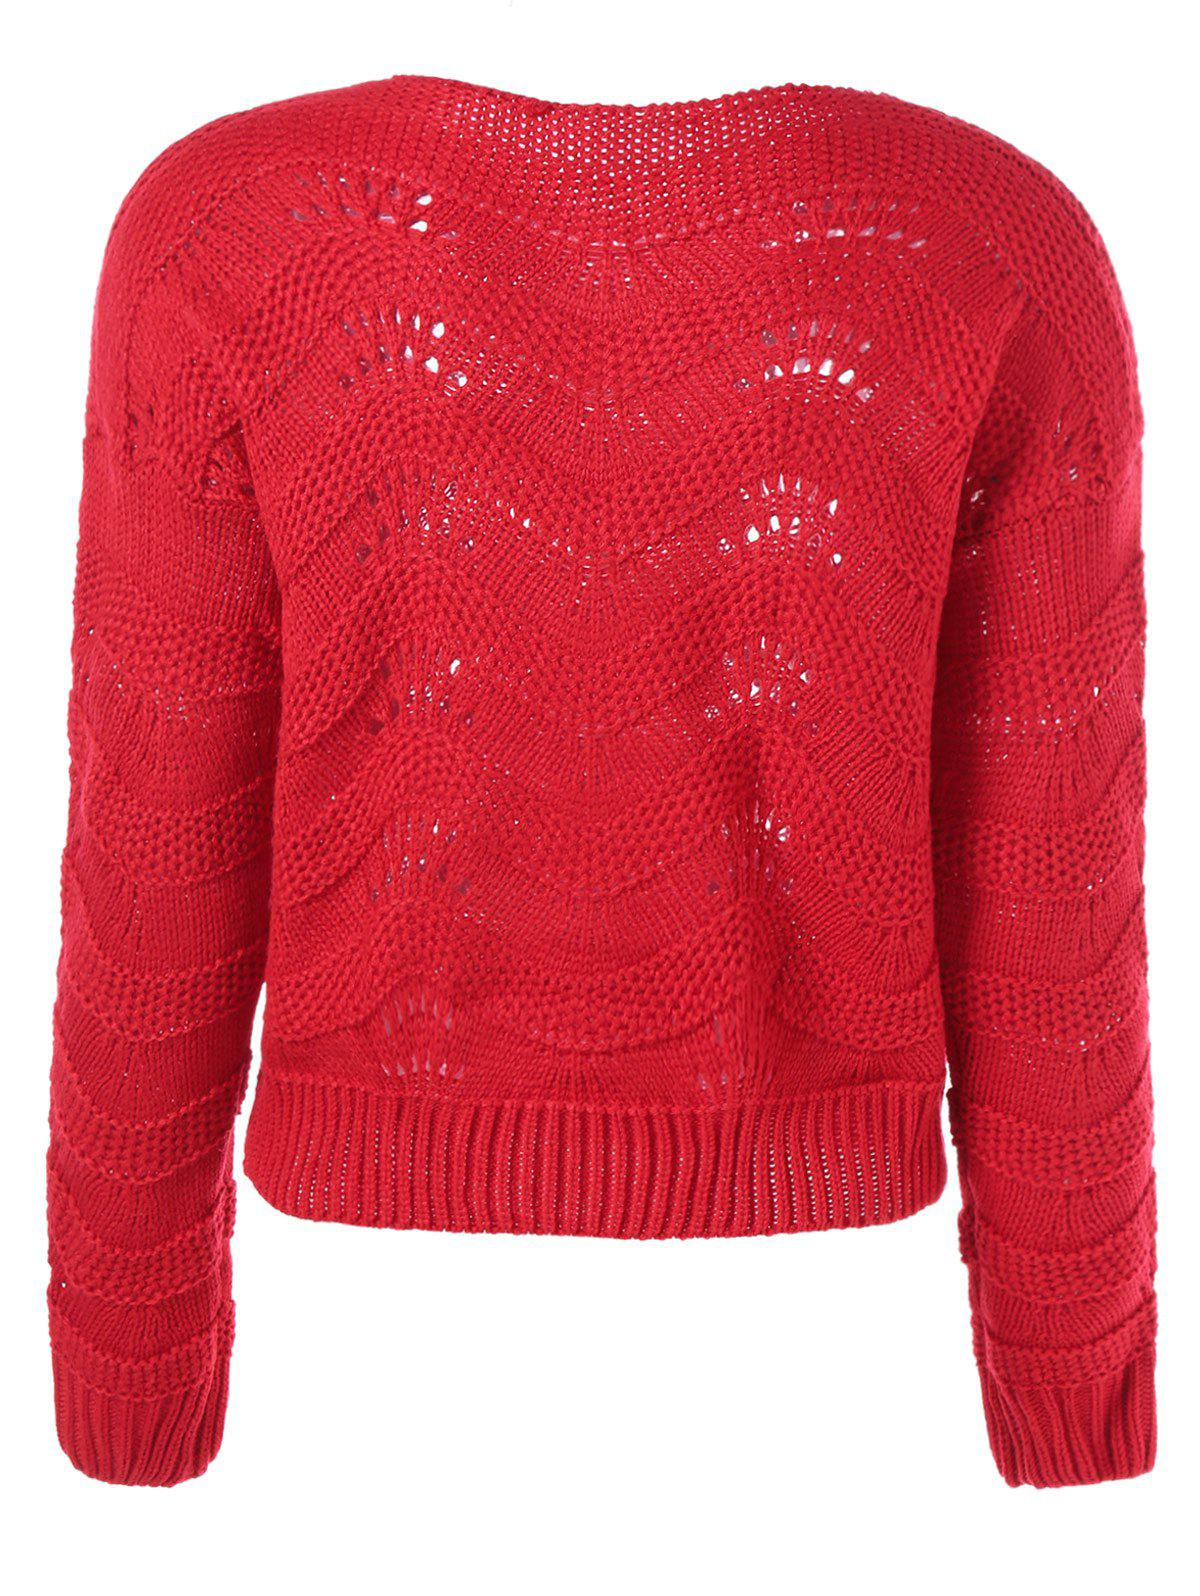 Ribbed Openwork Sweater - RED ONE SIZE